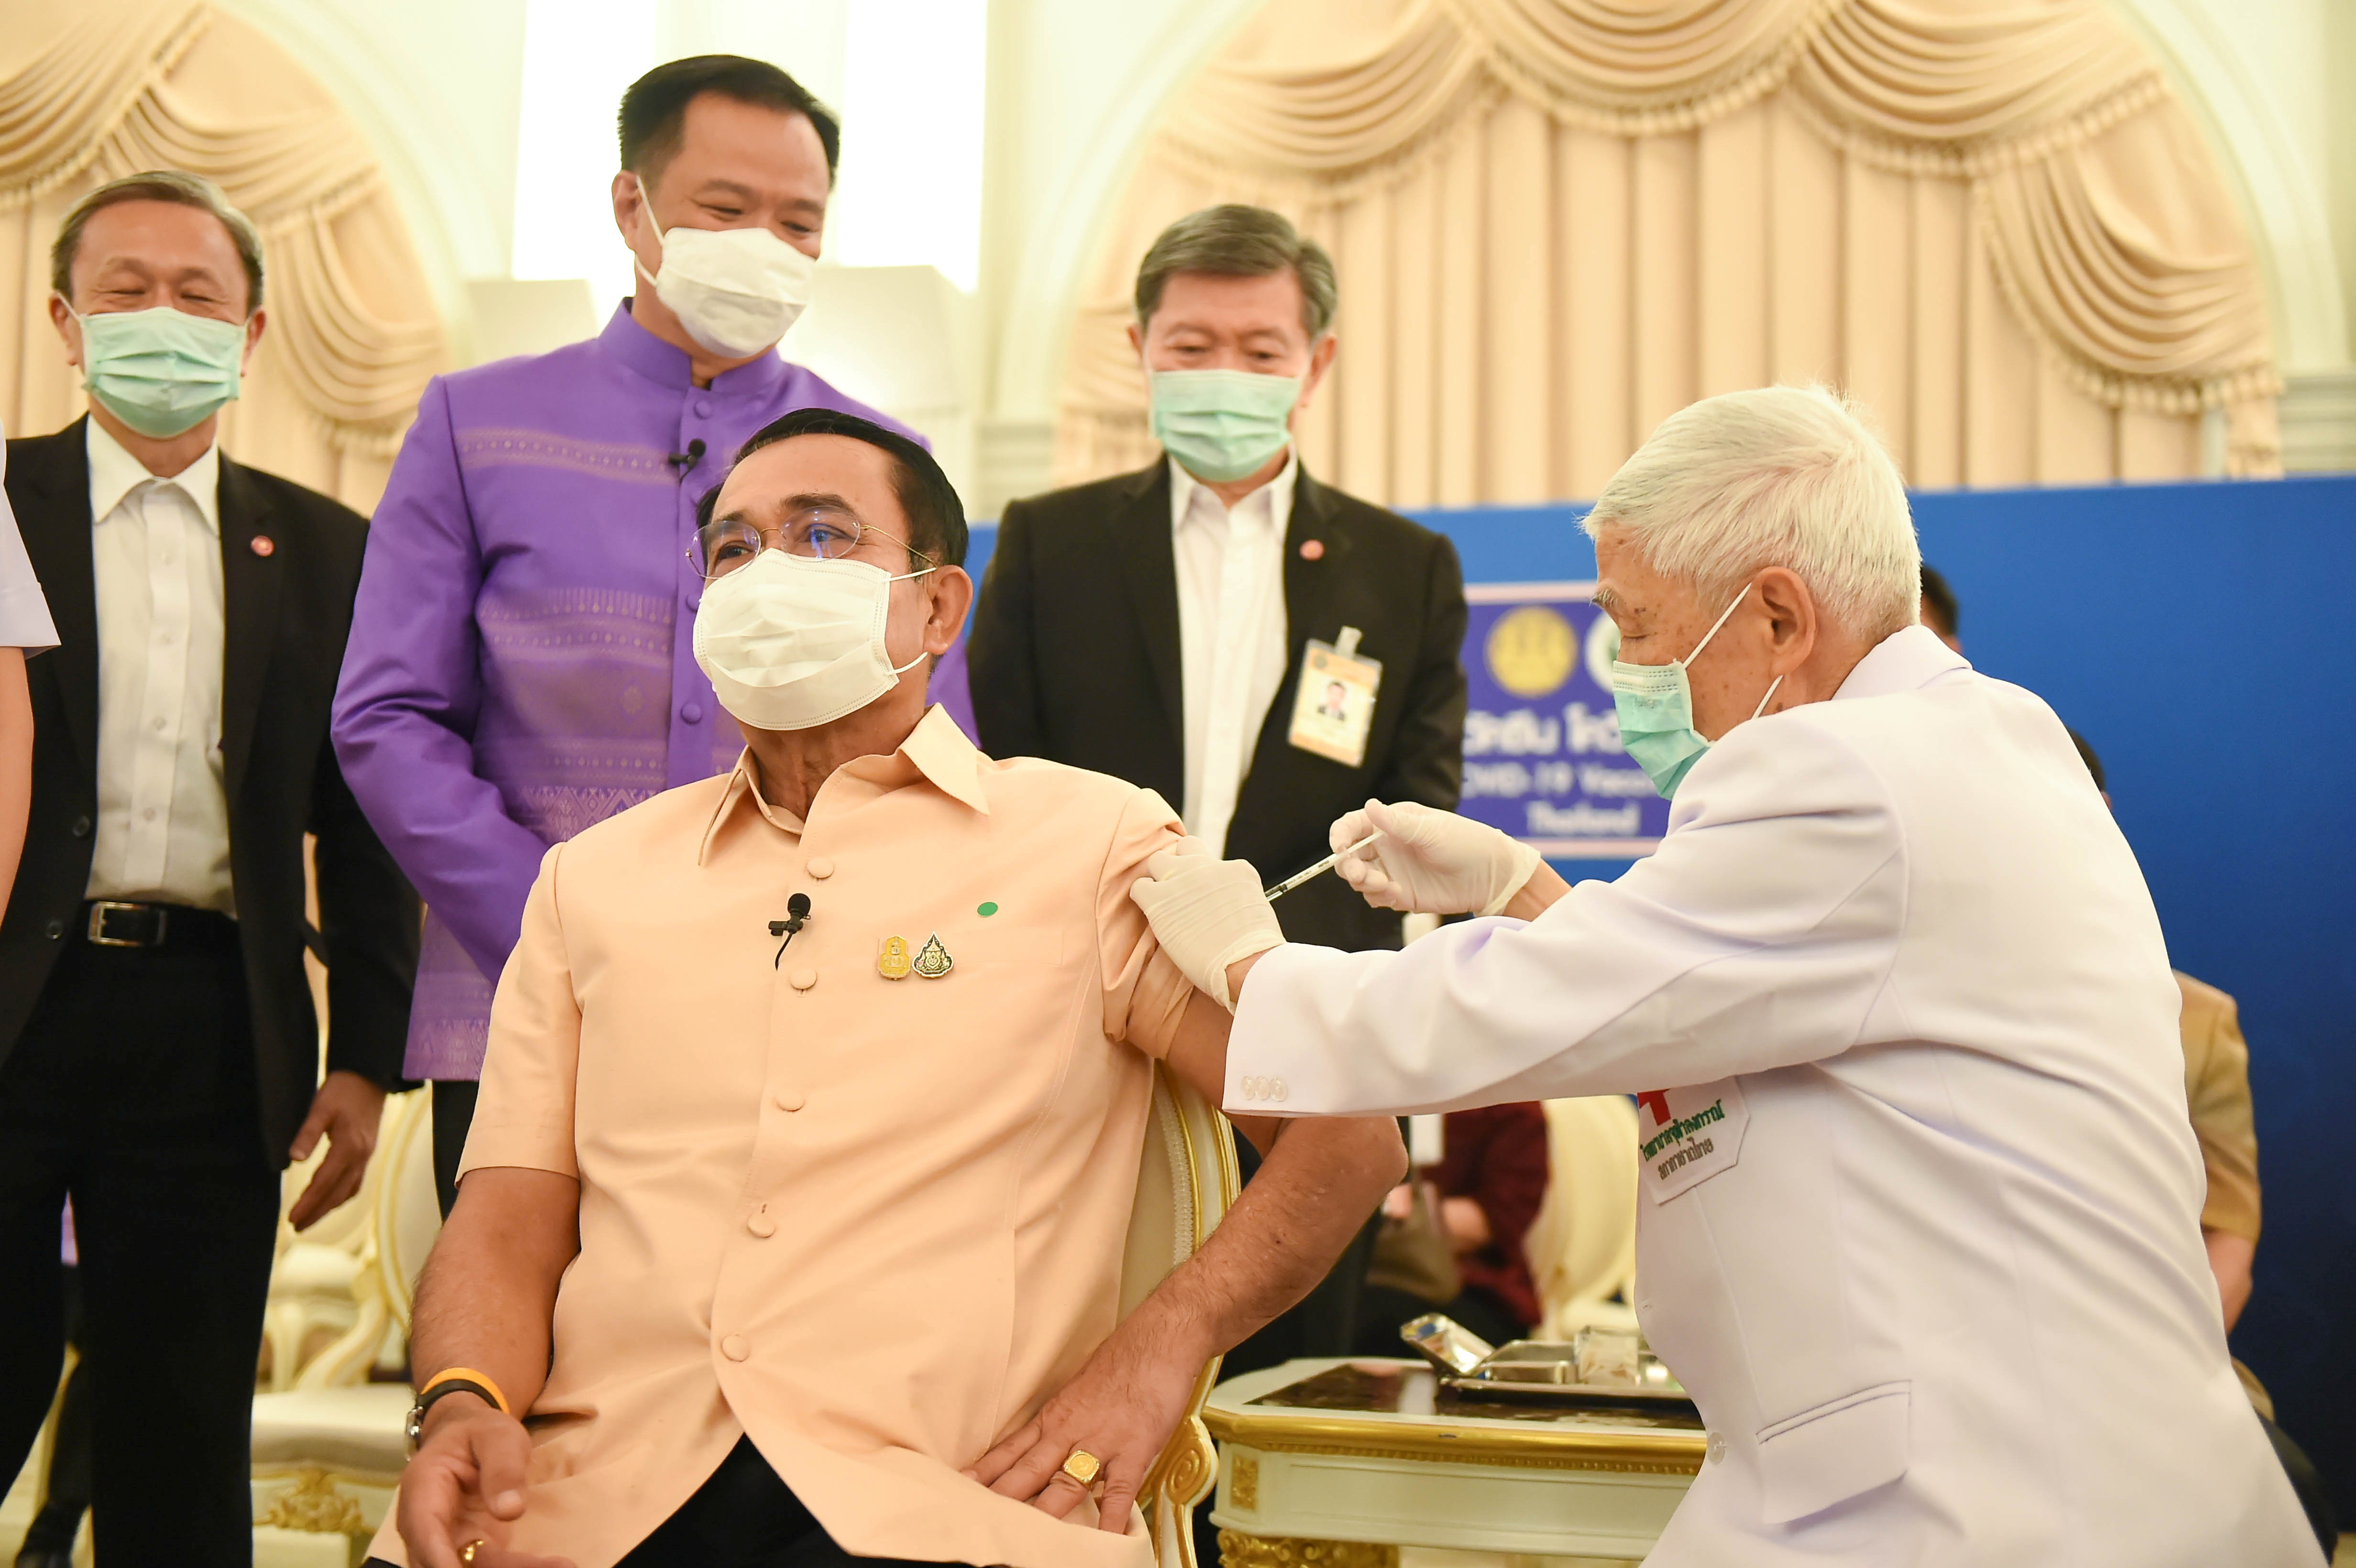 Thailand's Prime Minister Prayuth Chan-ocha receives an injection of the AstraZeneca coronavirus disease (COVID-19) vaccine at the Government House in Bangkok, Thailand, March 16, 2021. Thailand Government House/Handout via REUTERS